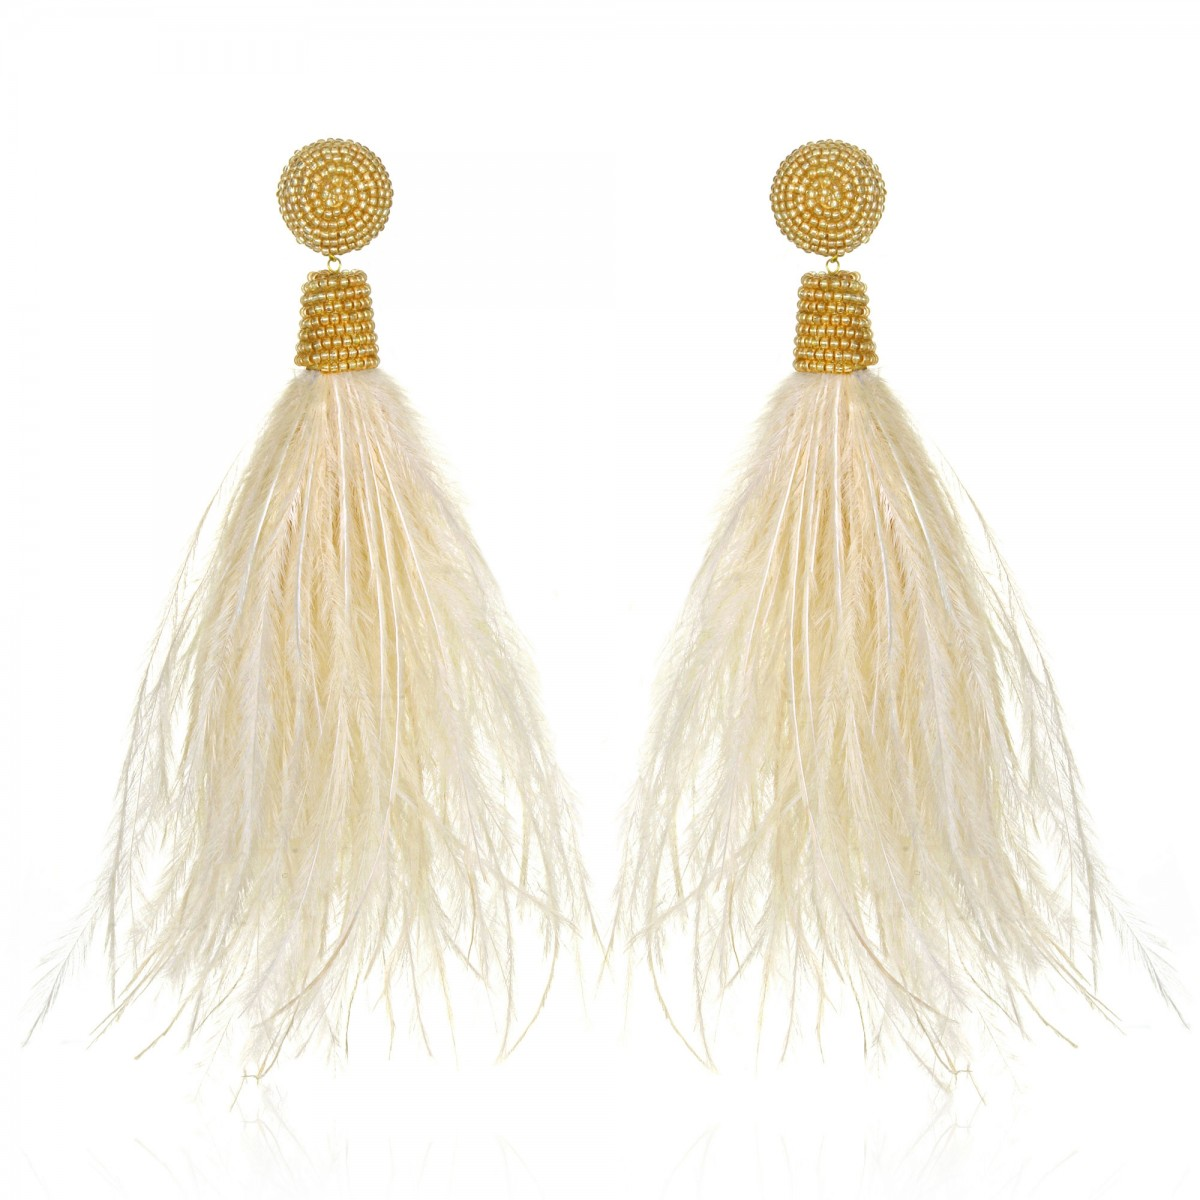 Beige Feather Earrings by SUZANNA DAI